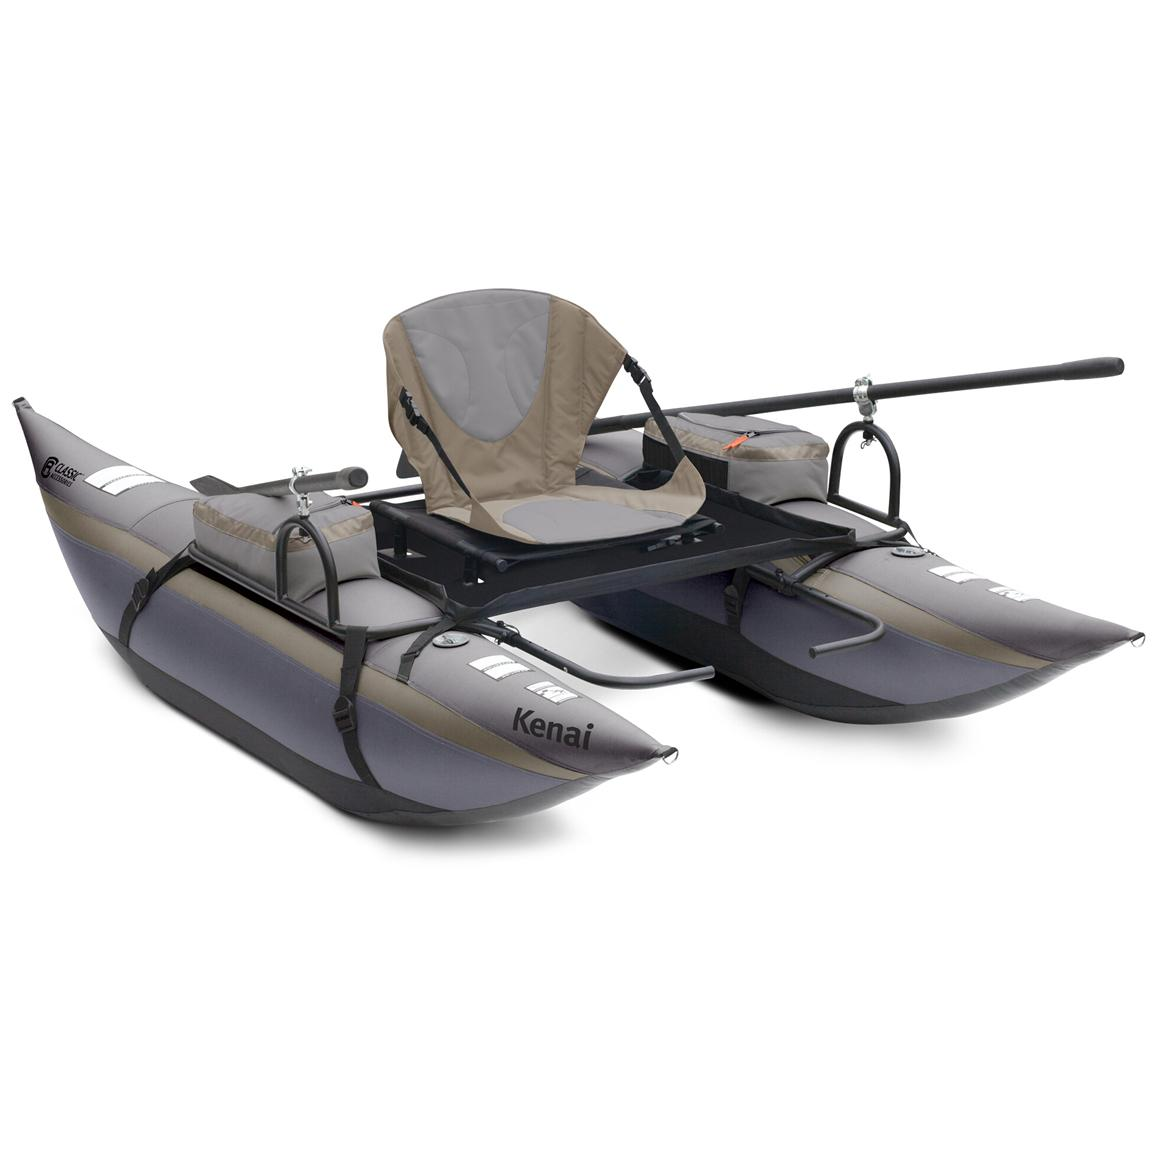 Classic Accessories® The Kenai Boat